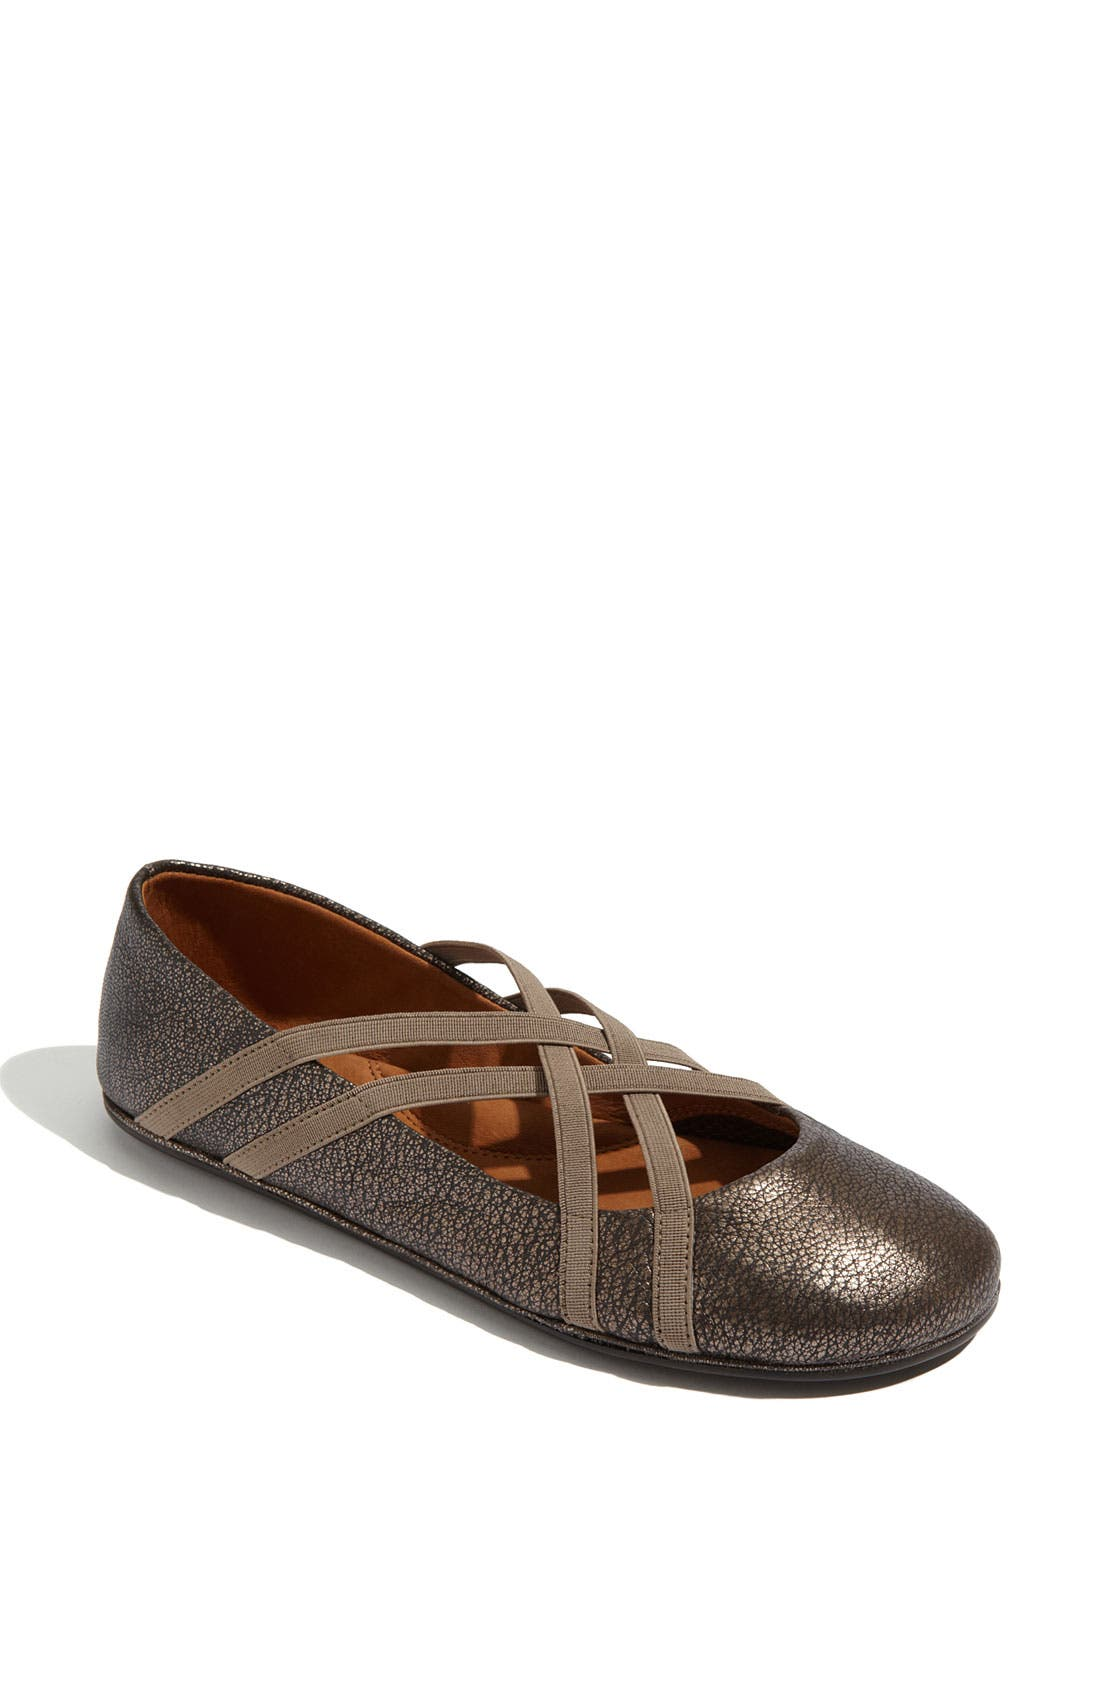 GENTLE SOULS BY KENNETH COLE 'Bay Braid' Flat, Main, color, ANTIQUE PEWTER